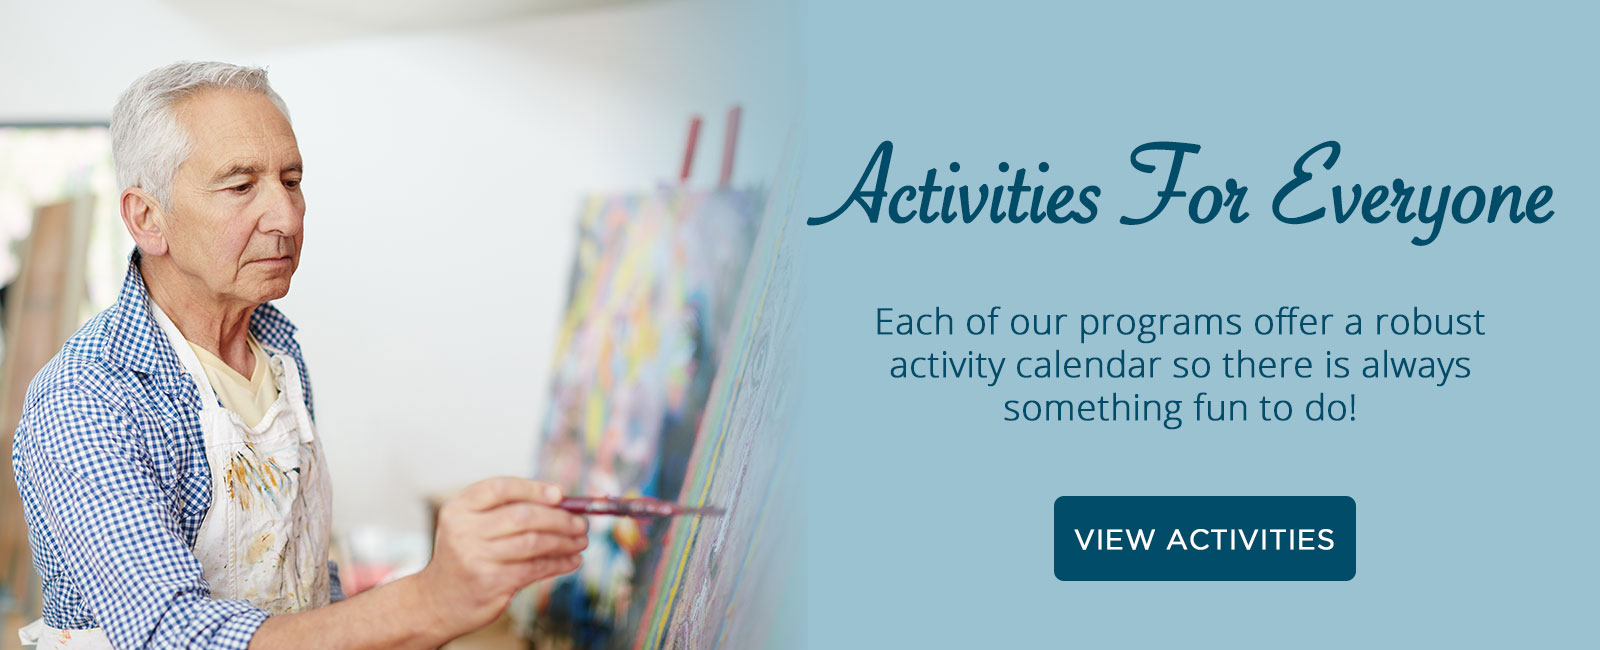 activities-for-everyone